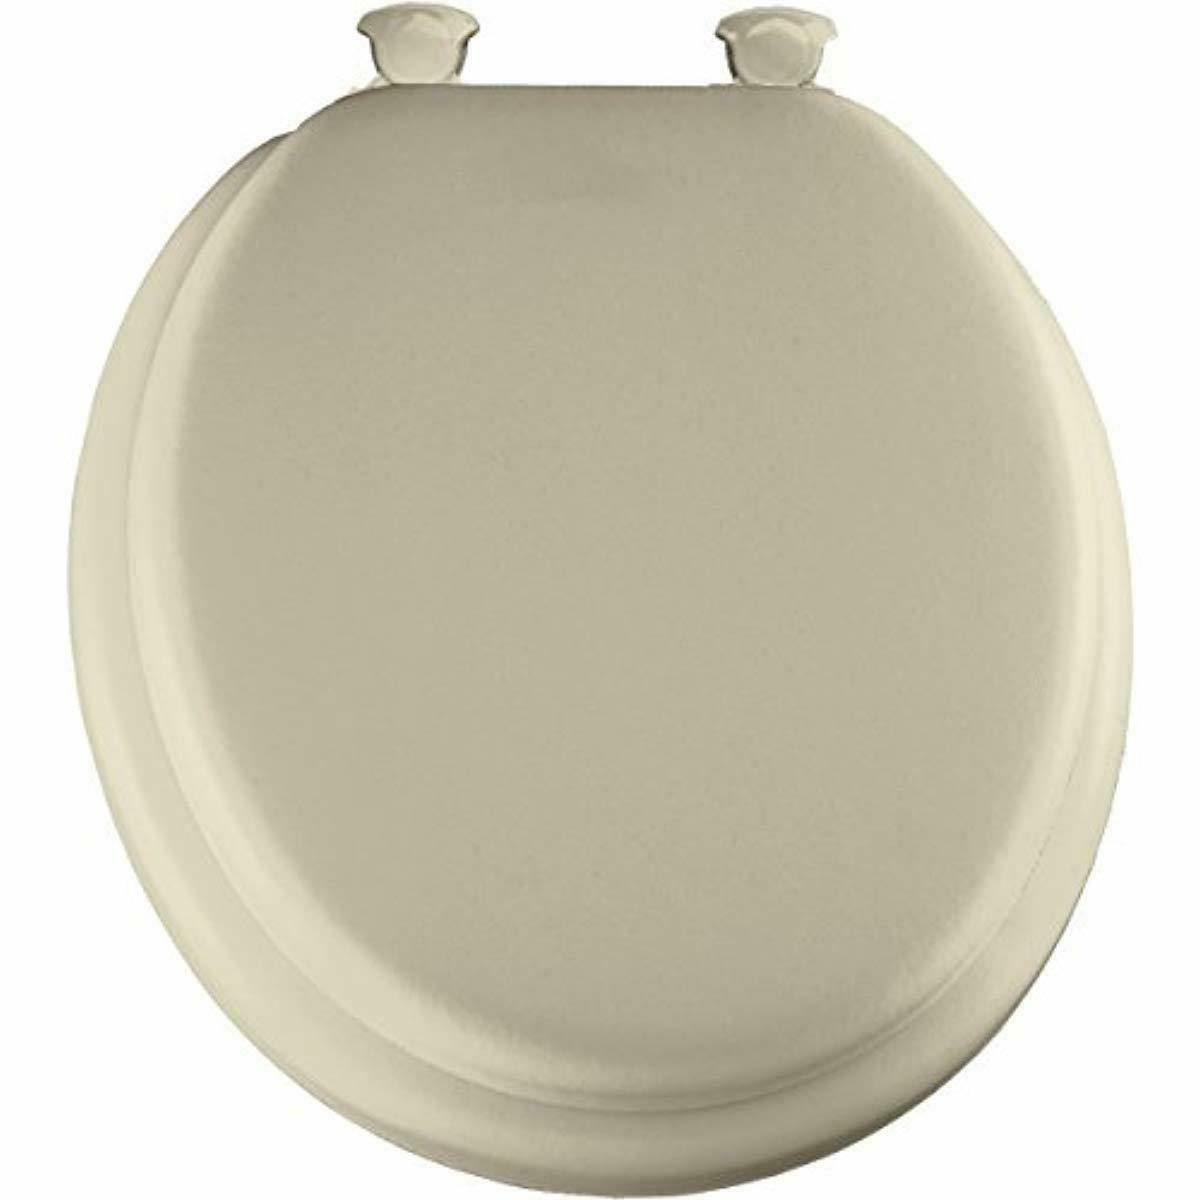 MAYFAIR Soft Toilet Seat Easily Remove Round Padded with Woo